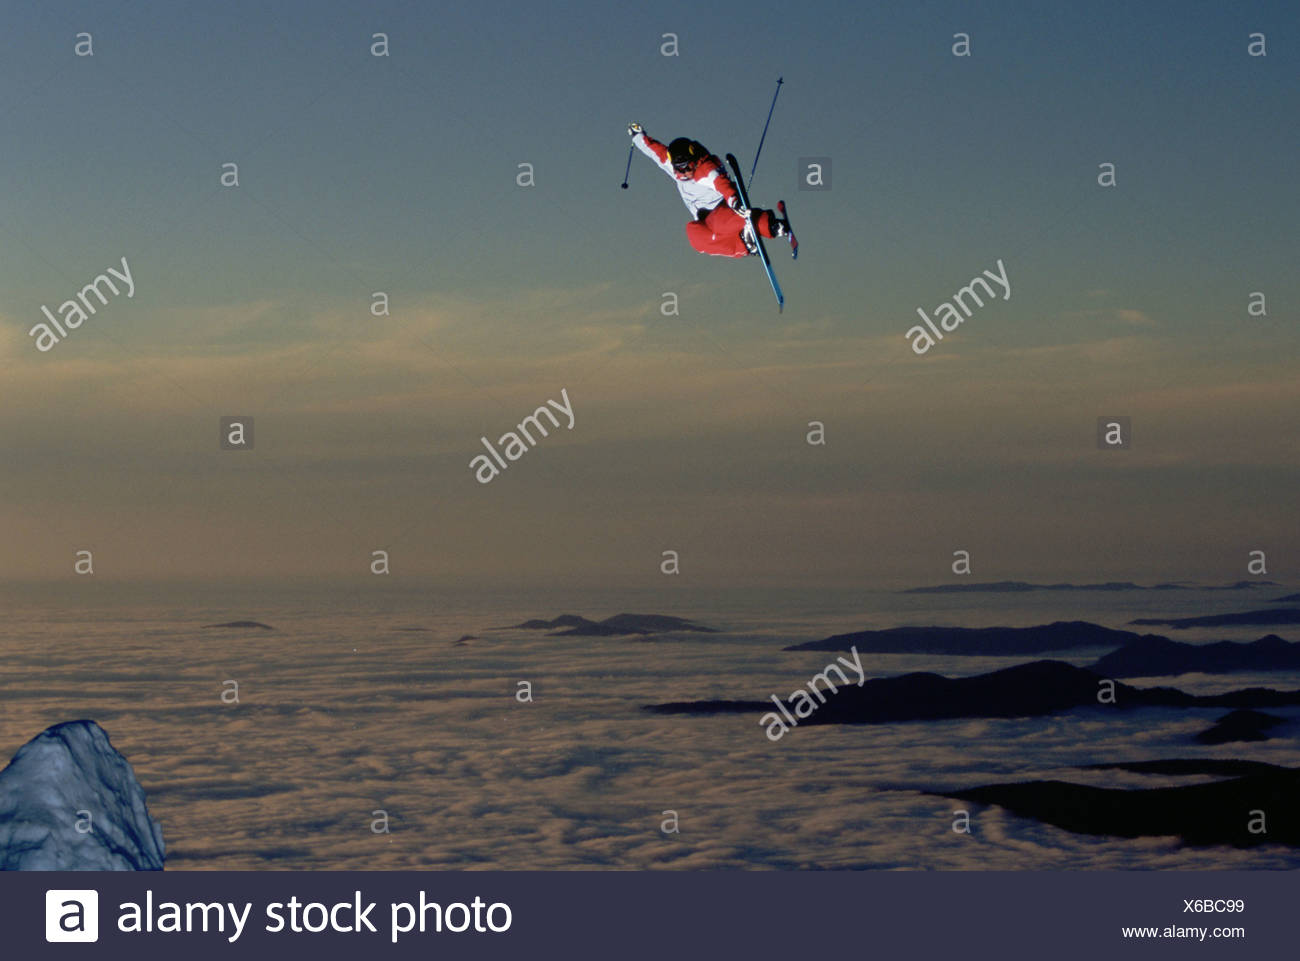 A skier jumps high into the air. - Stock Image